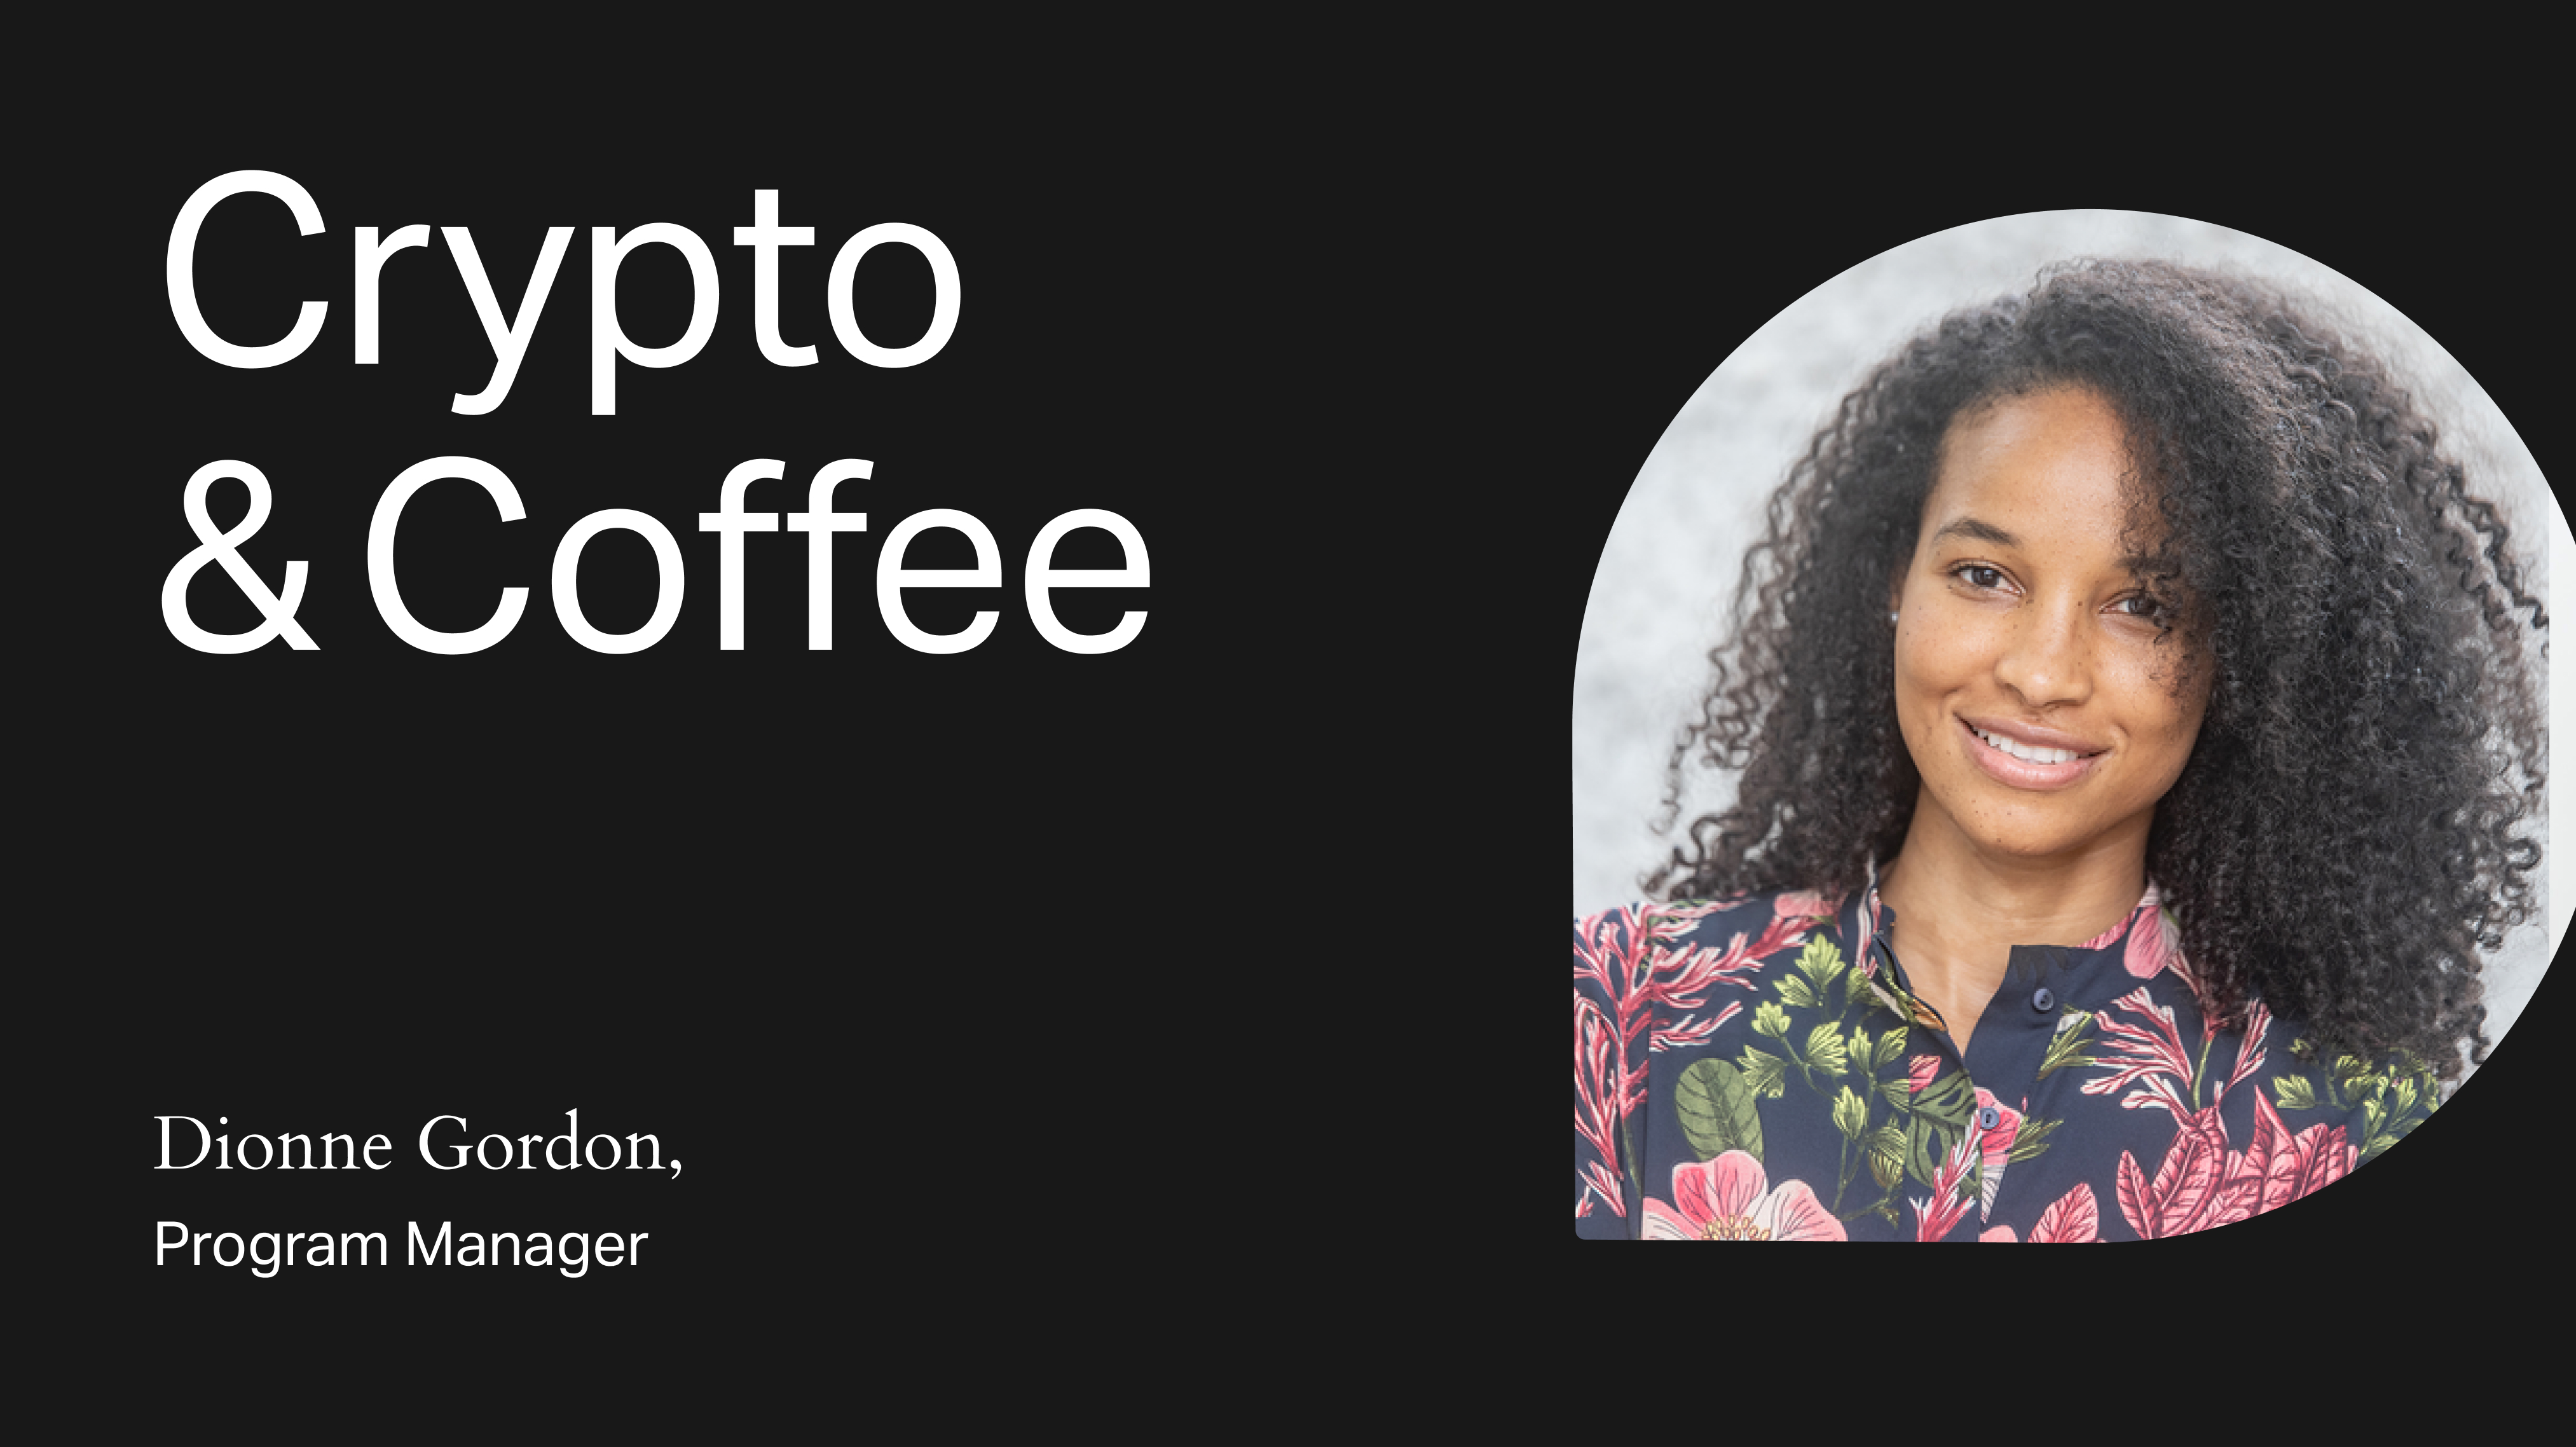 Crypto & Coffee with Dionne Gordon